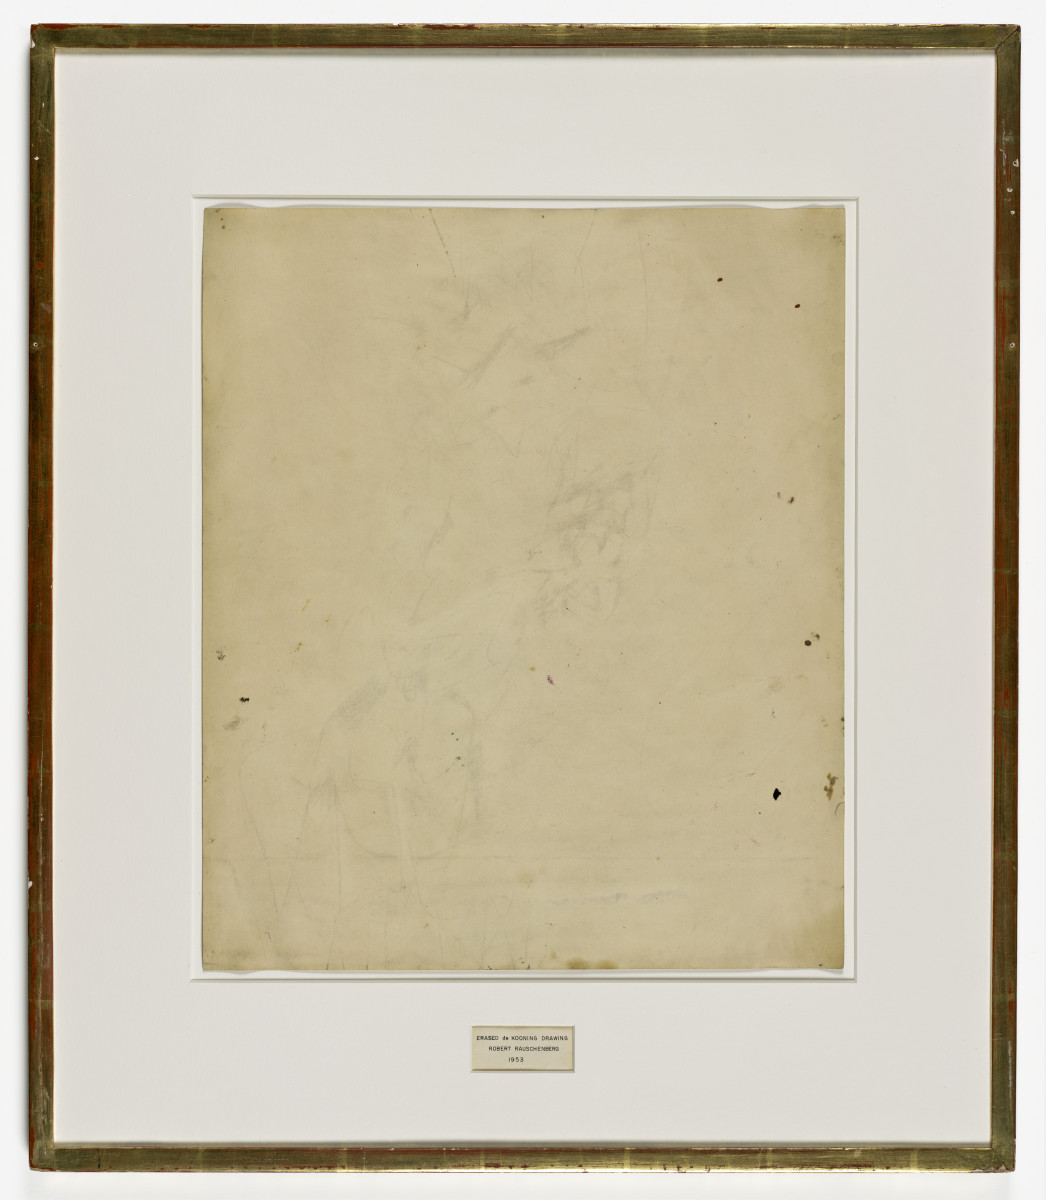 Erased de Kooning Drawing by Robert Rauschenberg